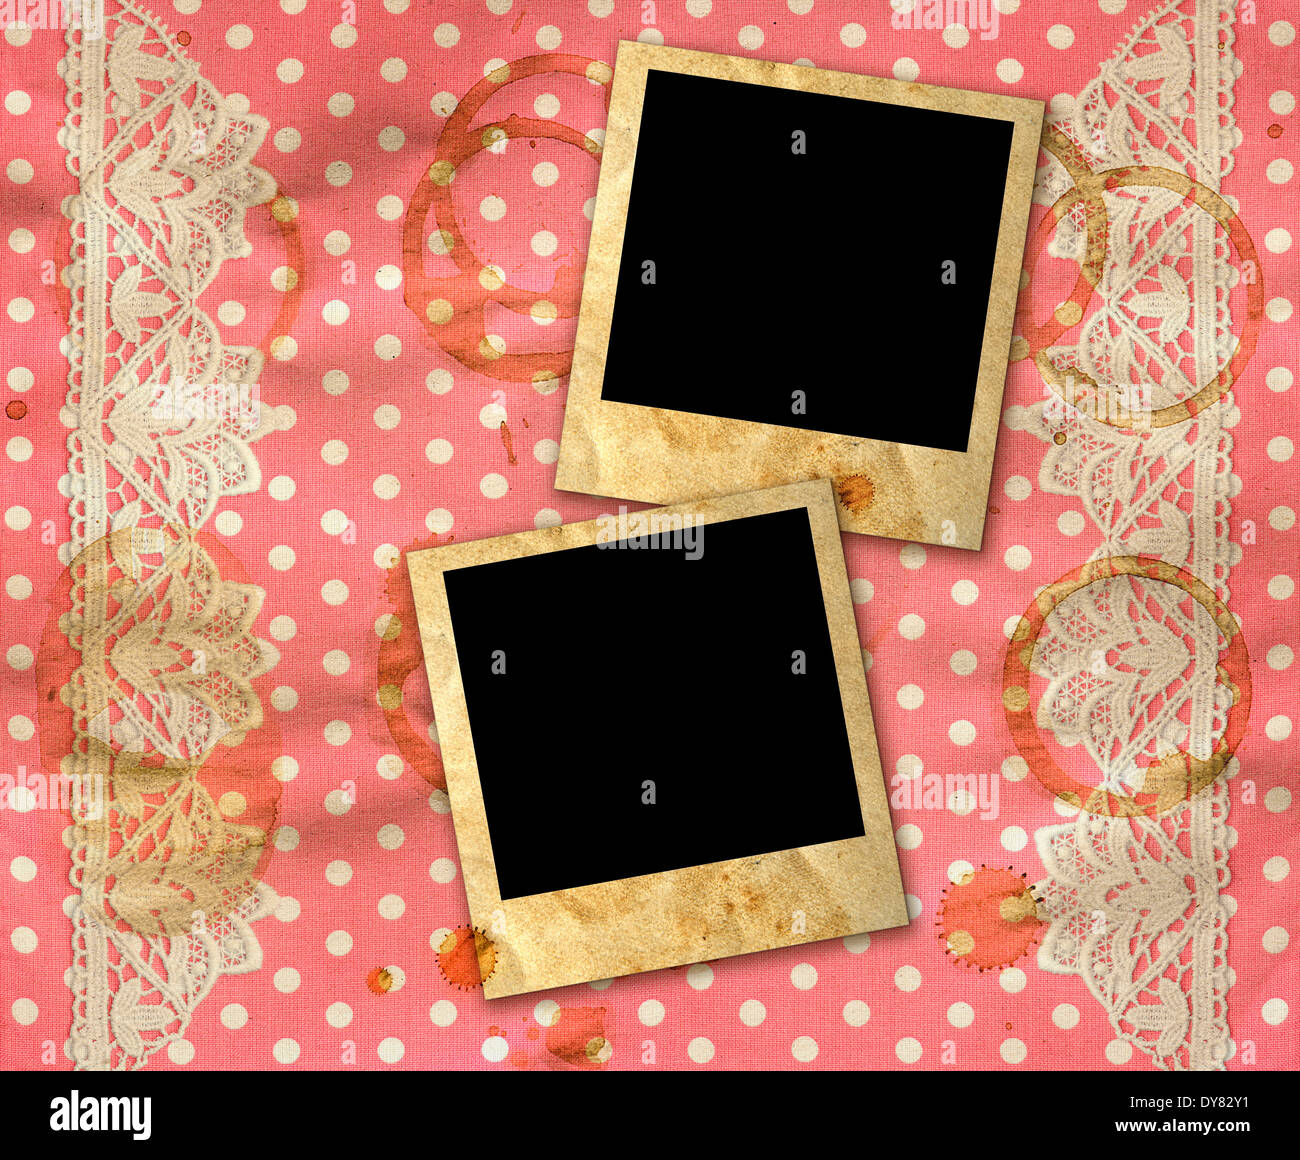 Two Old Photo Frames Over Dirty Pink White Polka Dot Background With